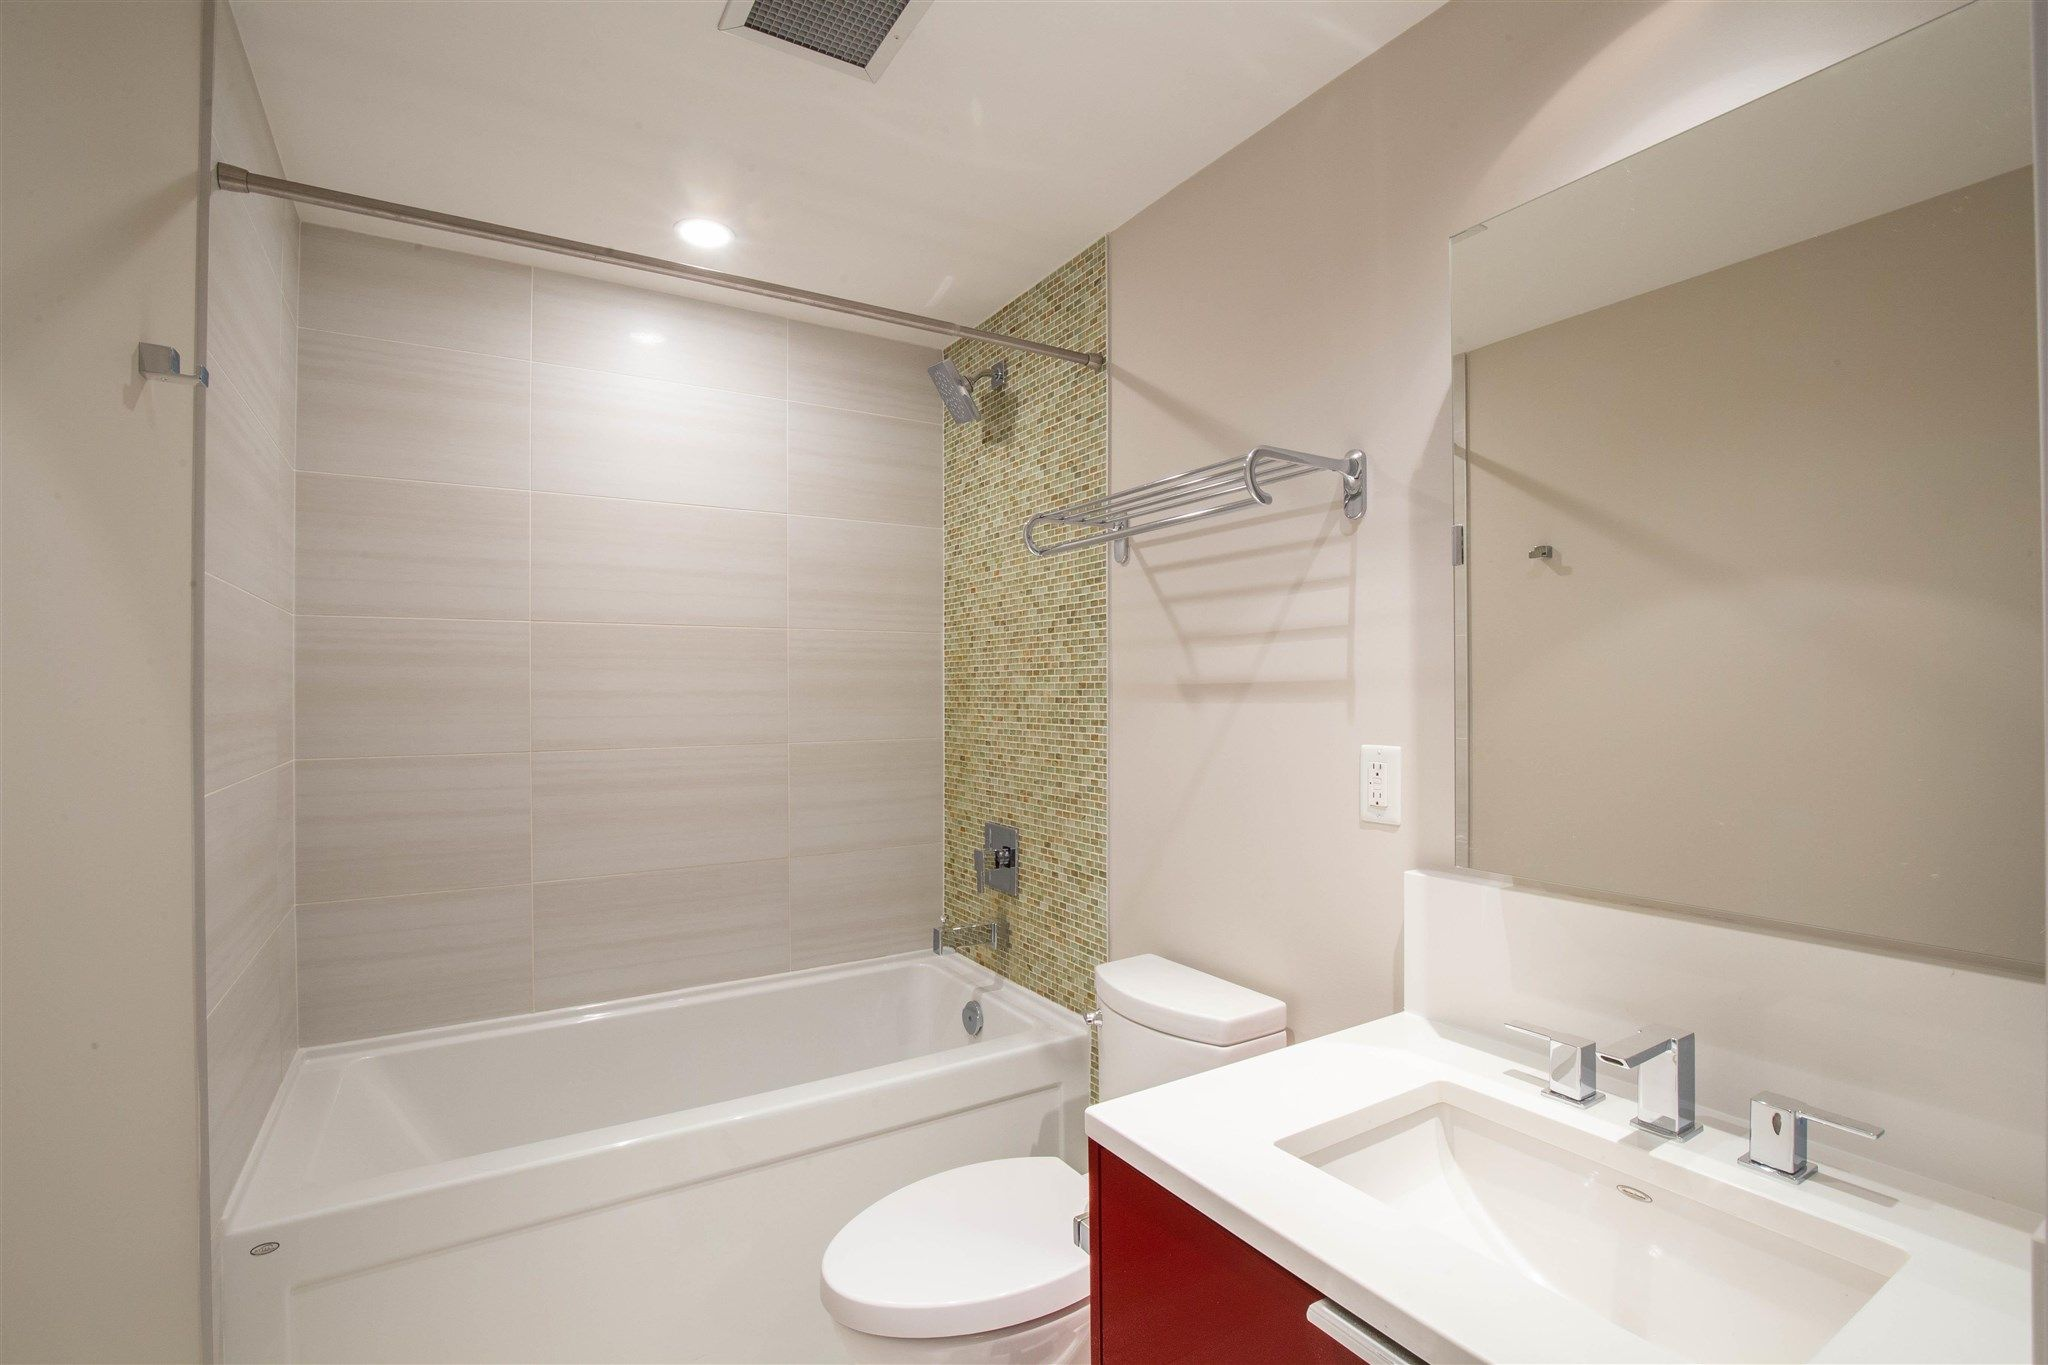 """Photo 4: Photos: 235 1777 W 7TH Avenue in Vancouver: Fairview VW Condo for sale in """"KITS 360"""" (Vancouver West)  : MLS®# R2607032"""